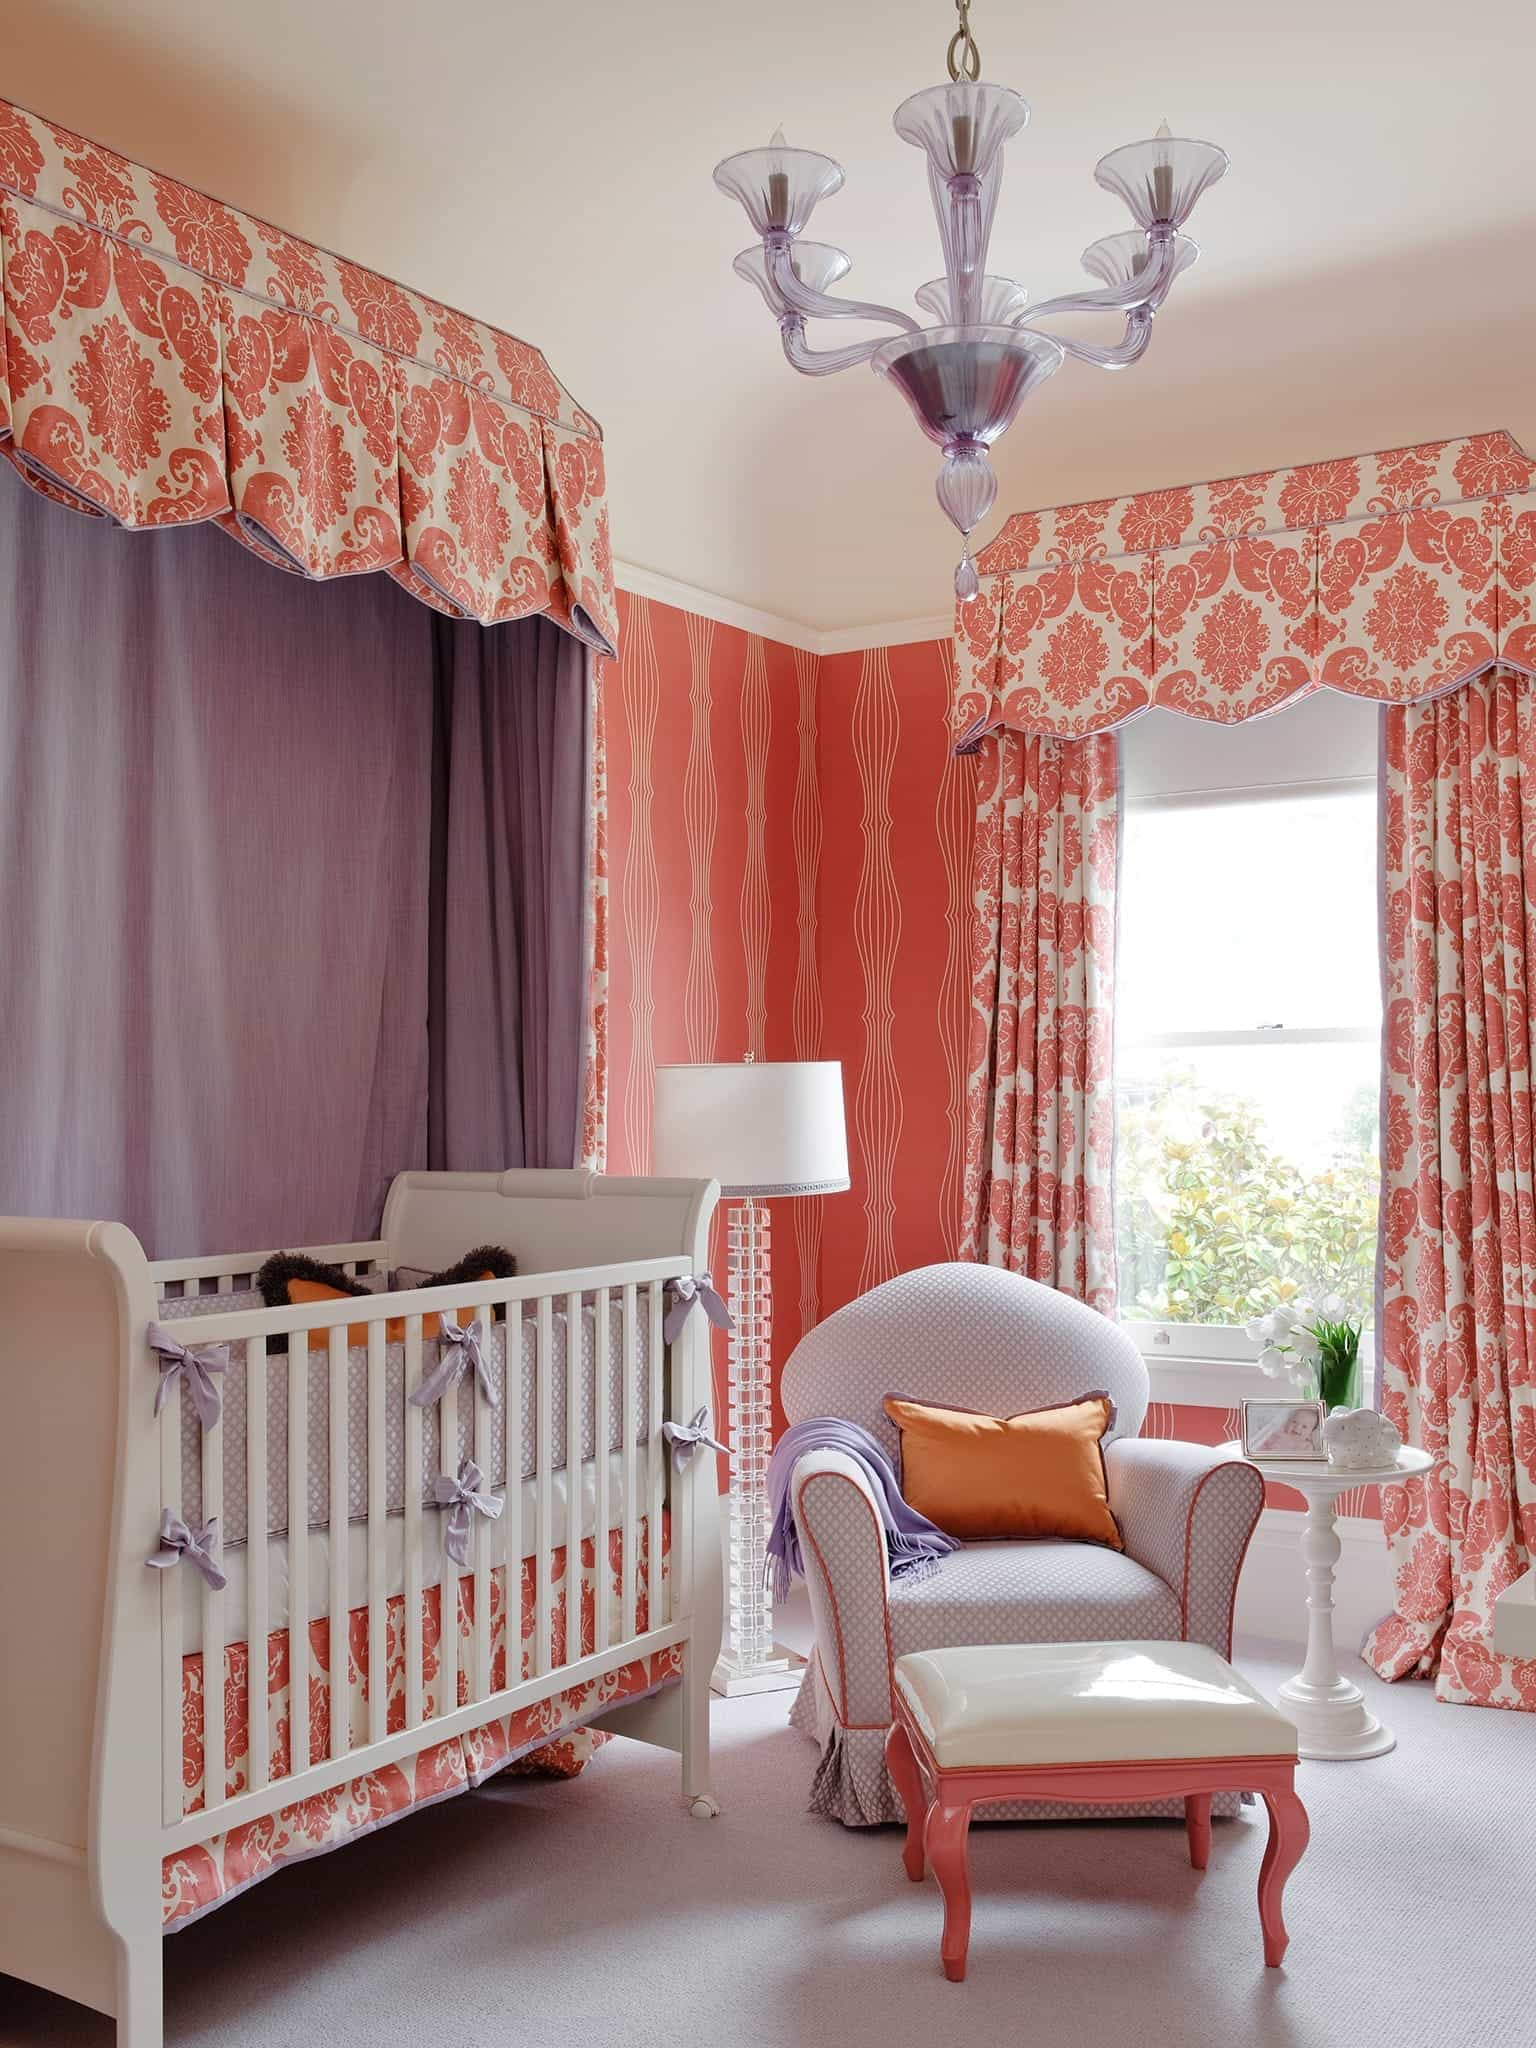 Coral And Lavender Nursery Bright And Colorful Baby Room Decor (Image 9 of 33)